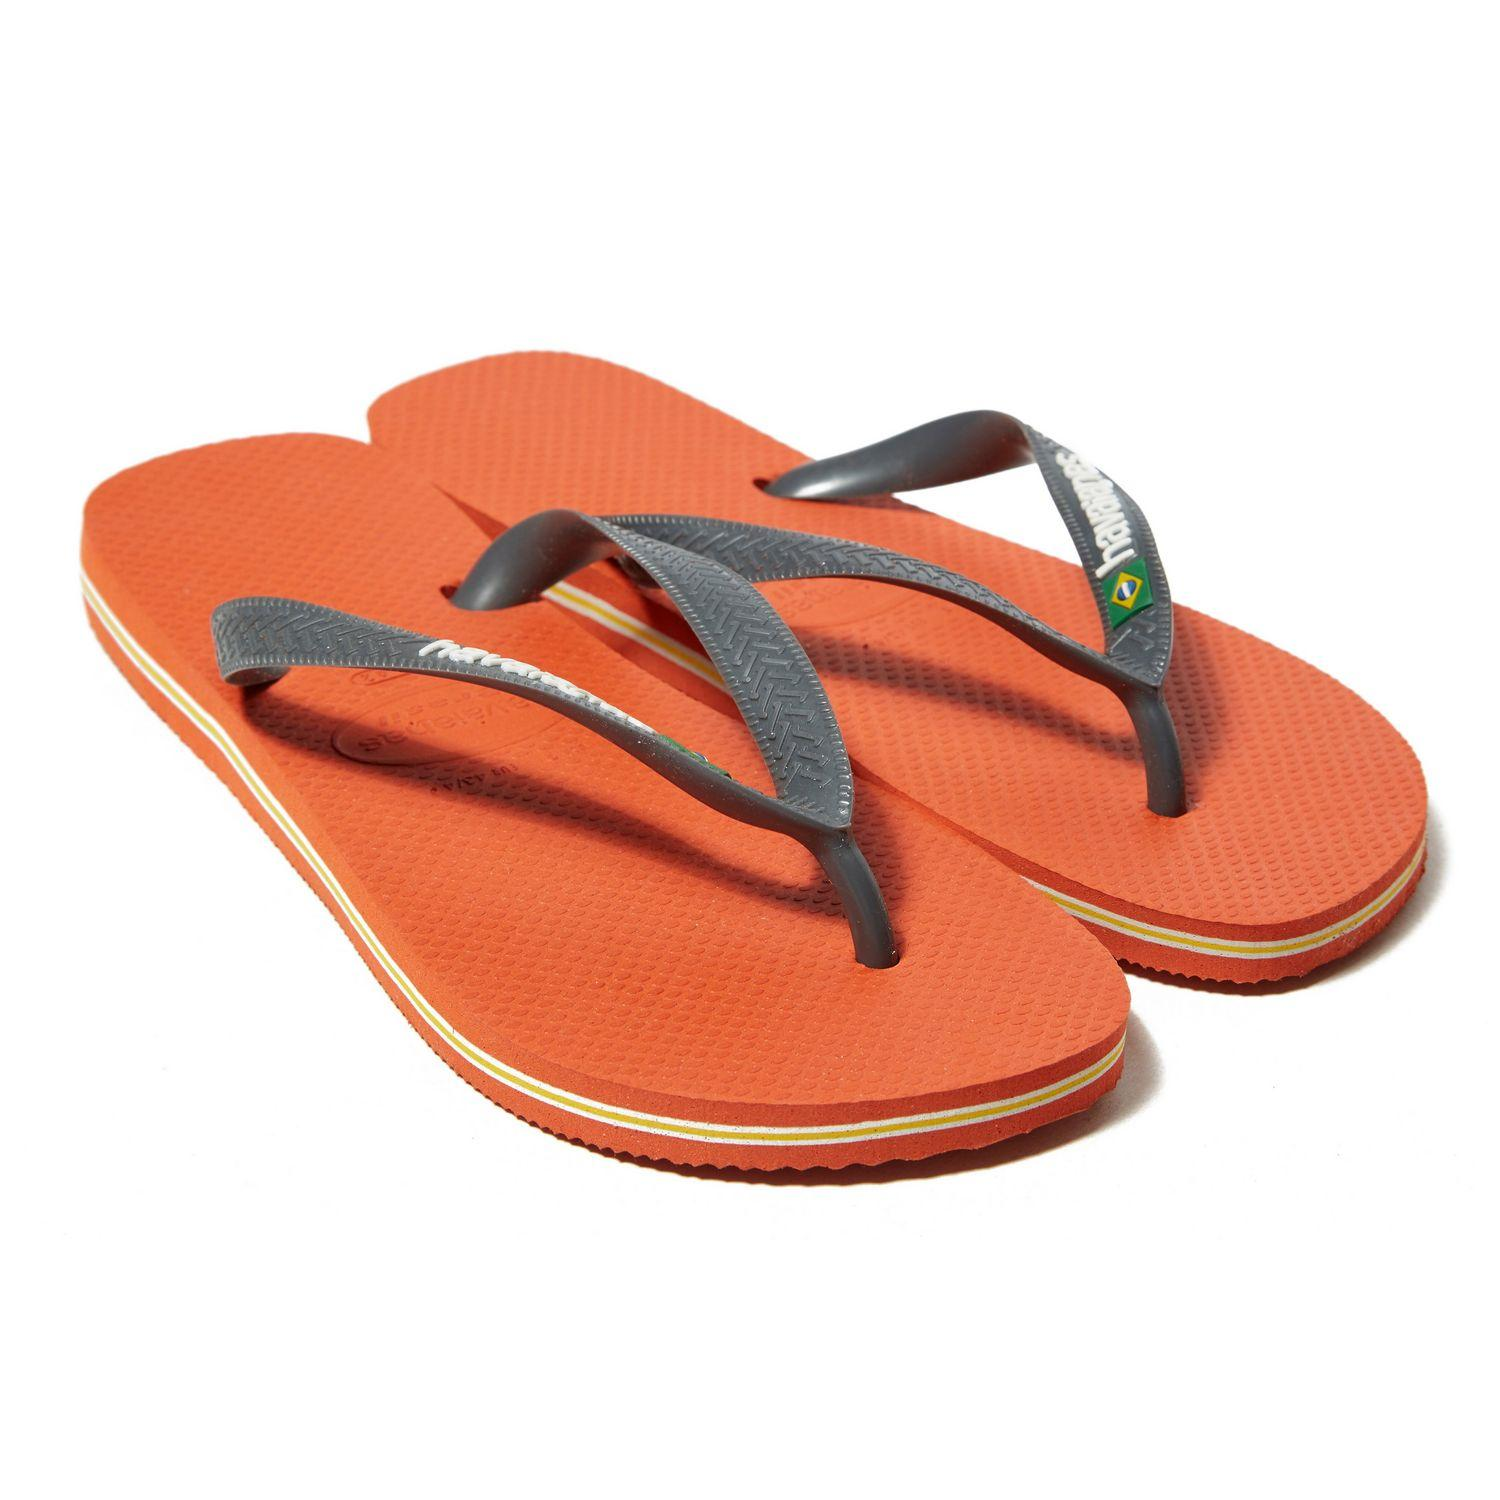 fd9244e5f996ba Havaianas - Orange Brazil Logo Flip Flops for Men - Lyst. View fullscreen